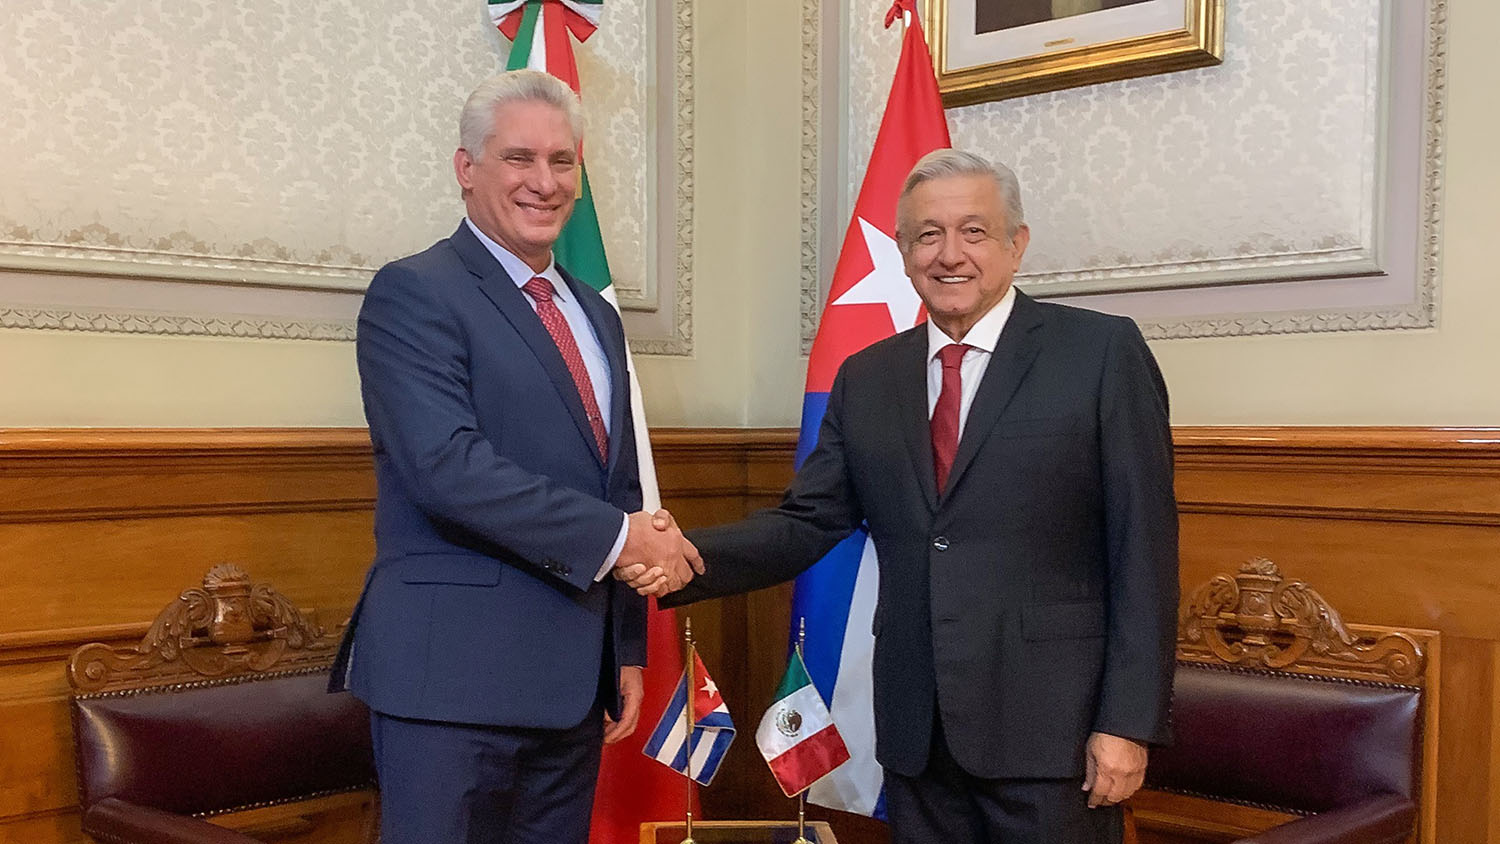 Saturday, December 1, 2018. Mexico City – Miguel Díaz-Canel Bermúdez, President of the Republic of Cuba and Andrés Manuel López Obrador, President of Mexico. Photo by the Mexican government.